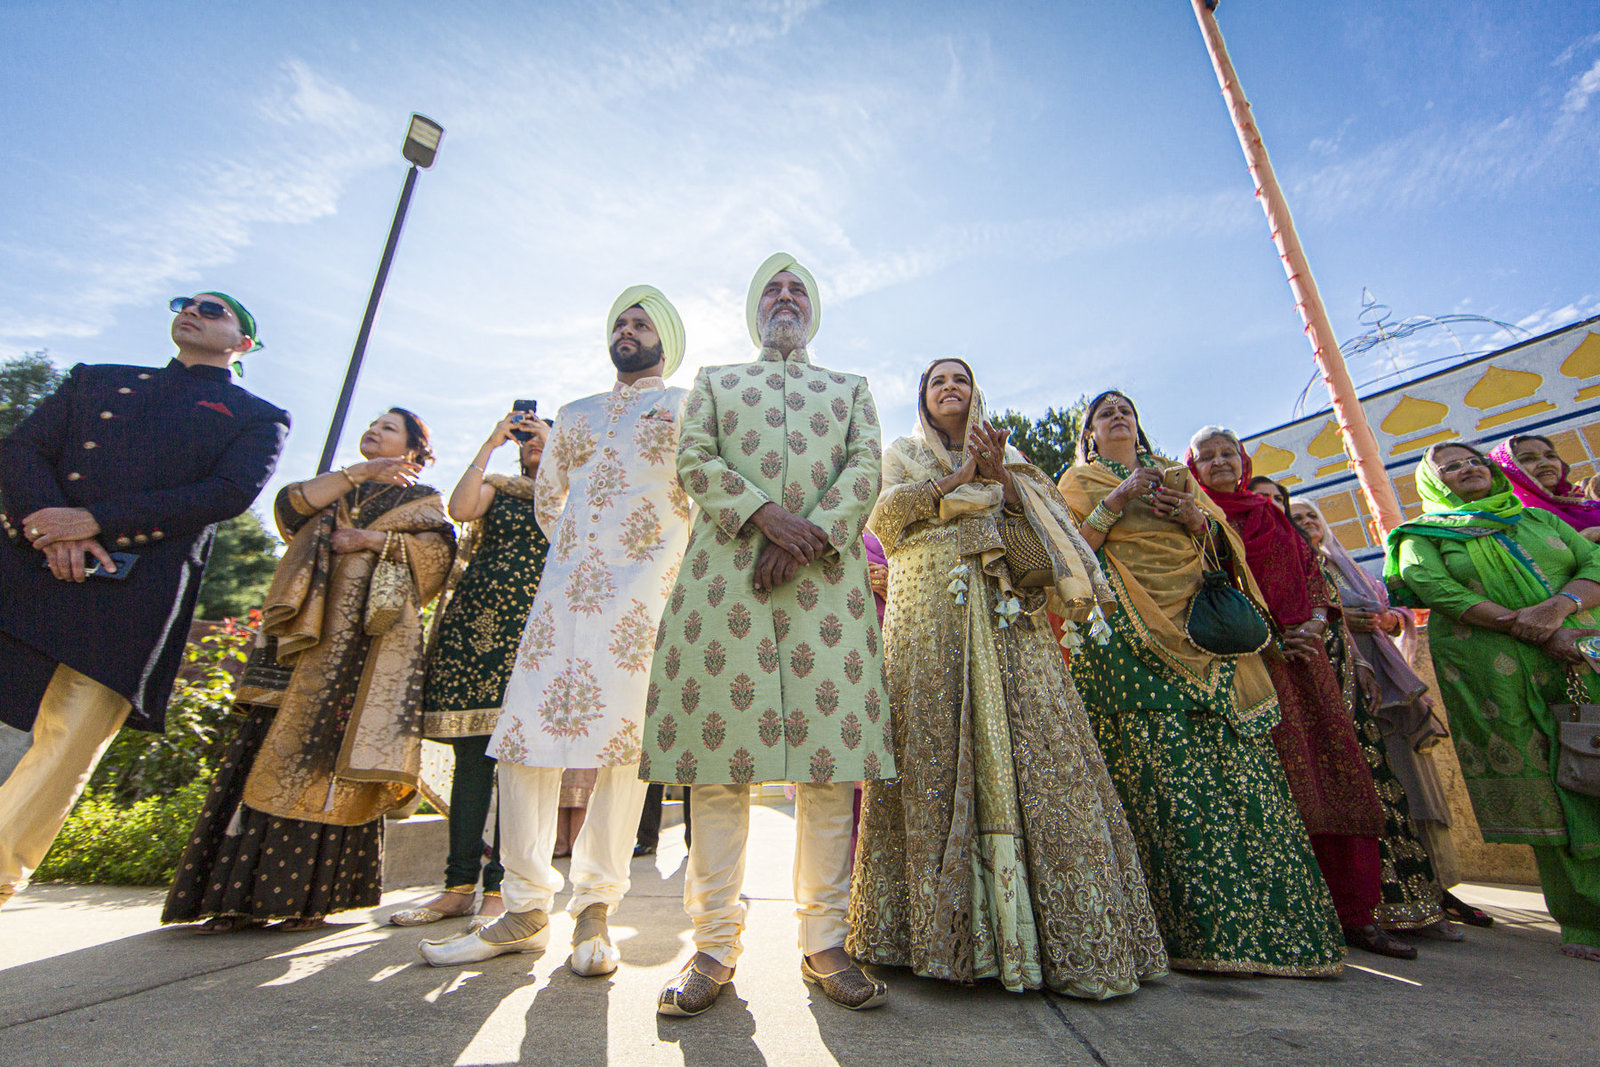 hilton-baltimore-md-indian-elegant-wedding-andrew-morrell-1-14